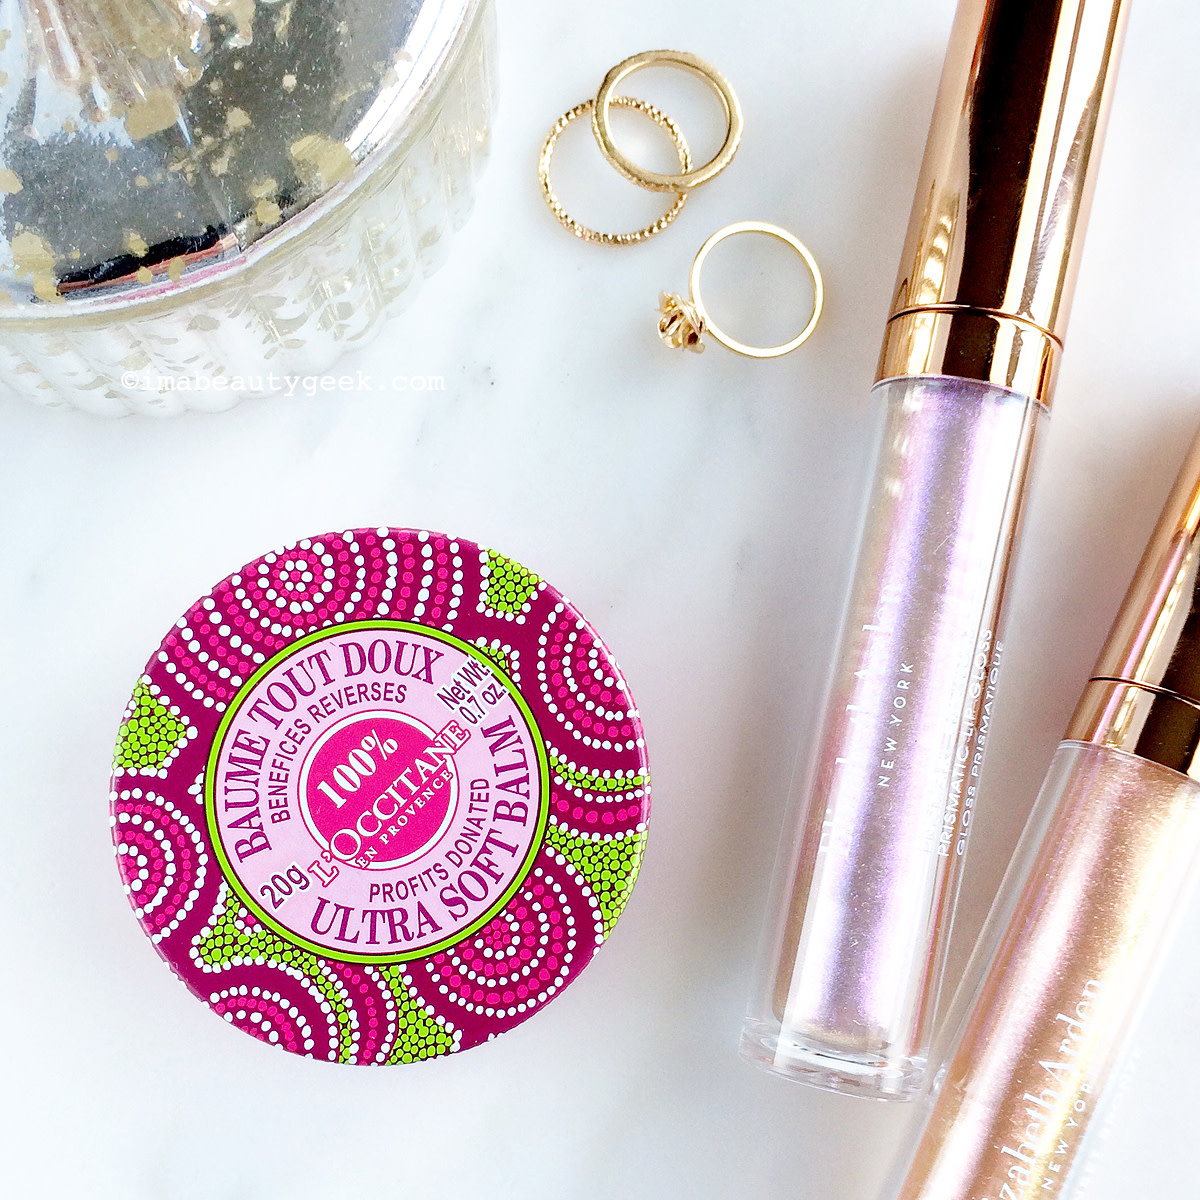 L'Occitane En Provence Women's Day Solidarity Balm